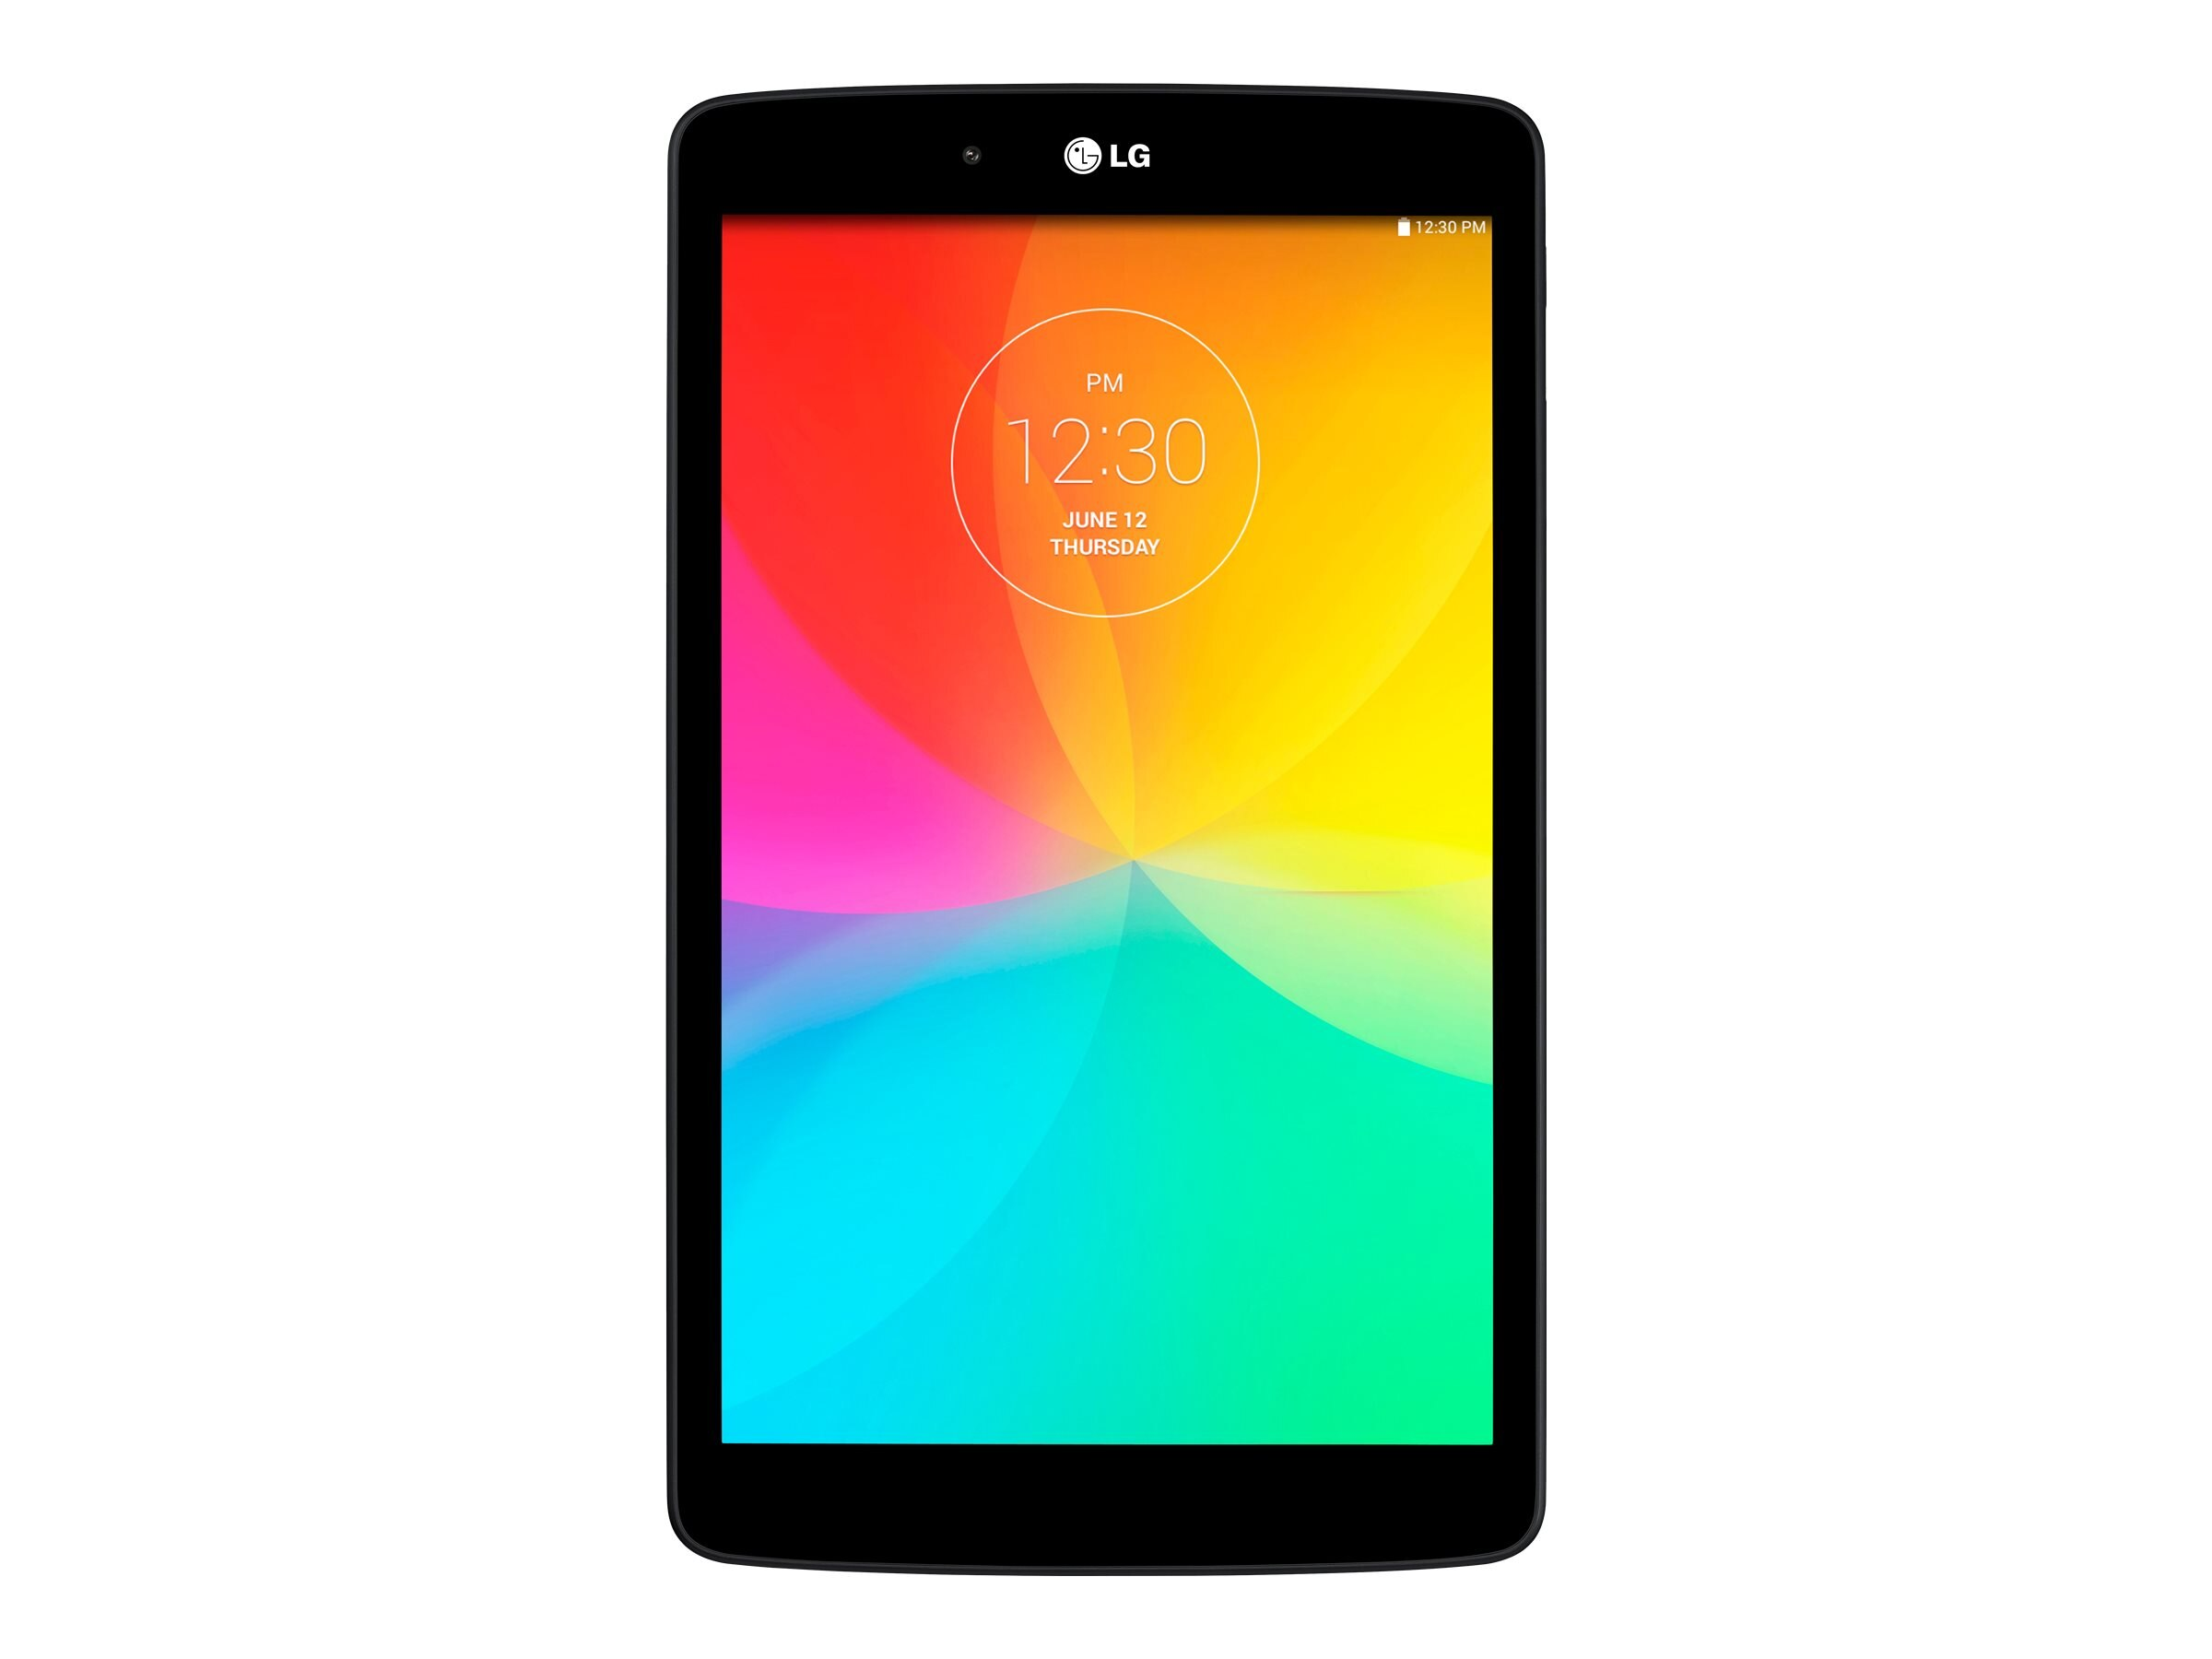 LG G Pad Snapdragon 400 1.2GHz 1GB 16GB abgn BT 2xWC 8 WXGA MT Android 5.0 Black